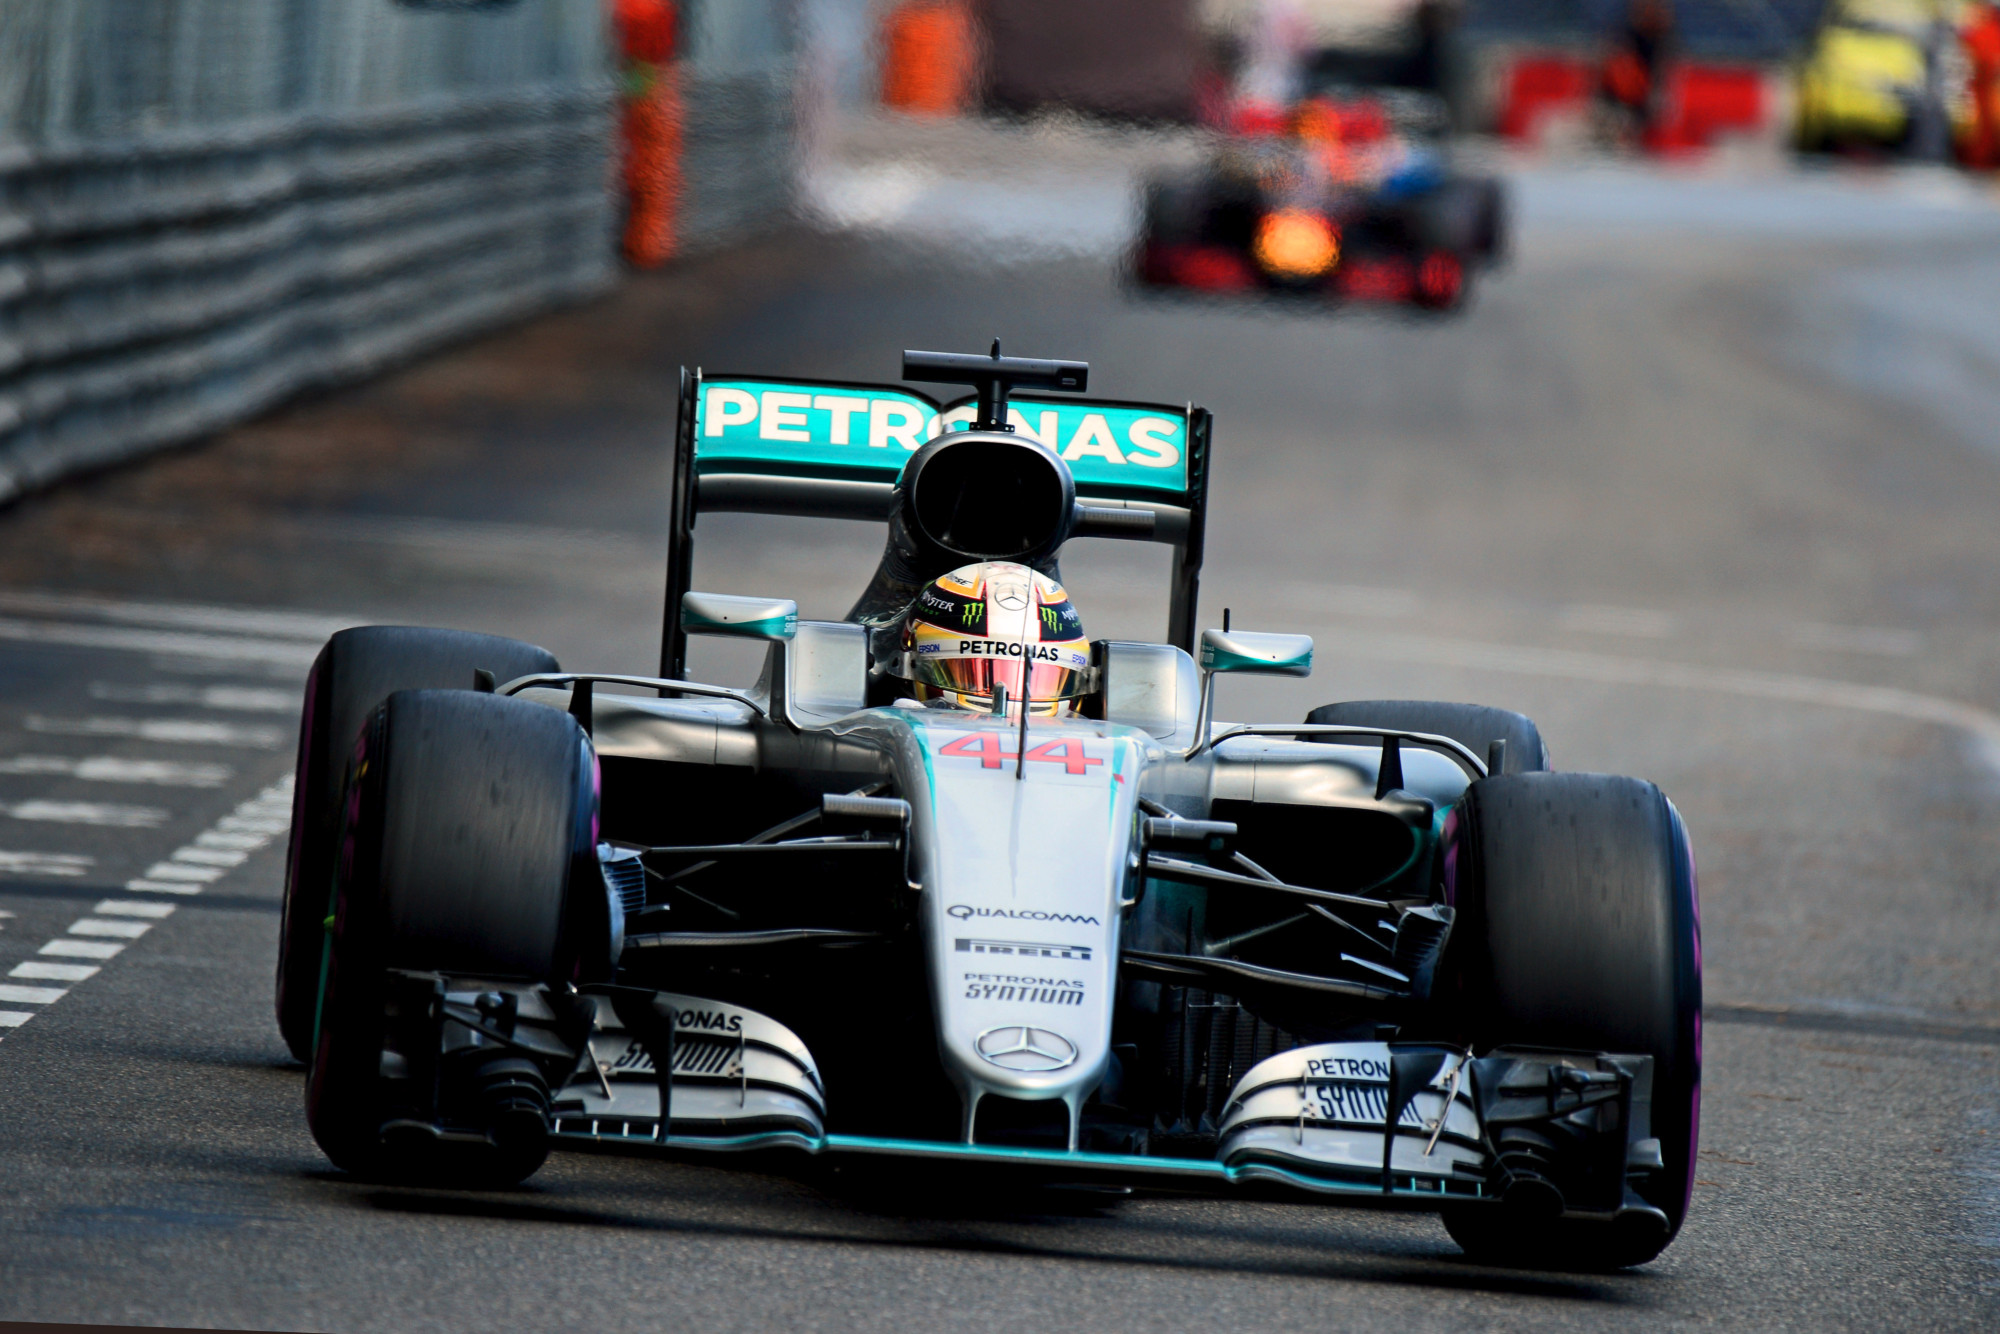 Lewis Hamilton leading the Monaco Grand Prix